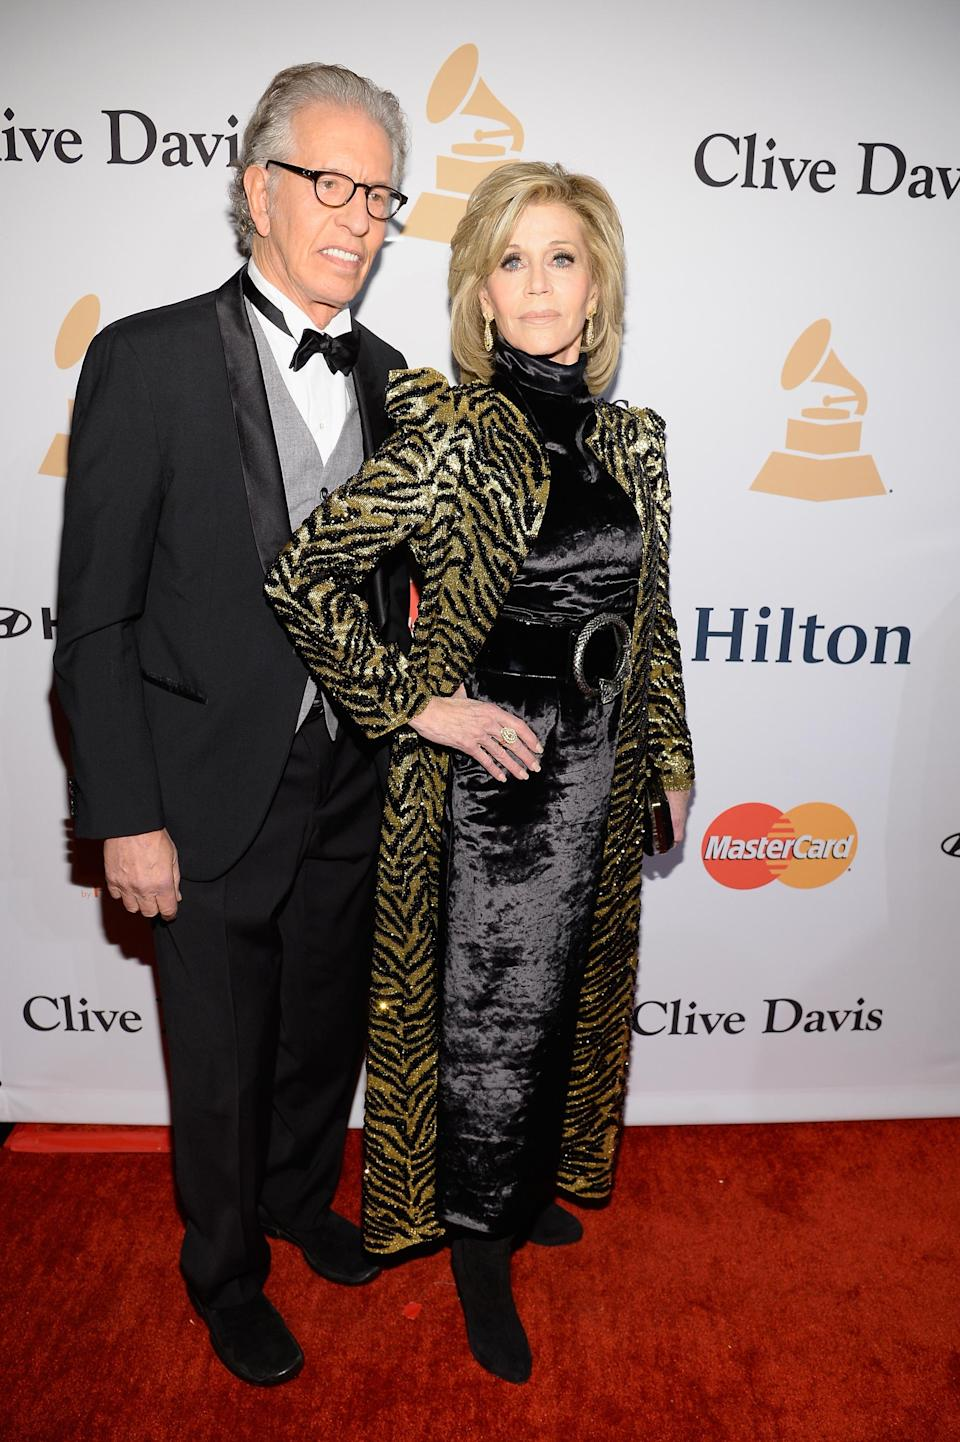 Jane Fonda attends the 2016 pre-Grammy Salute to Industry Icons ceremony honoring Irving Azoff at the Beverly Hilton Hotel on Feb. 14, 2016, in Beverly Hills, Calif. (Photo: Getty Images)